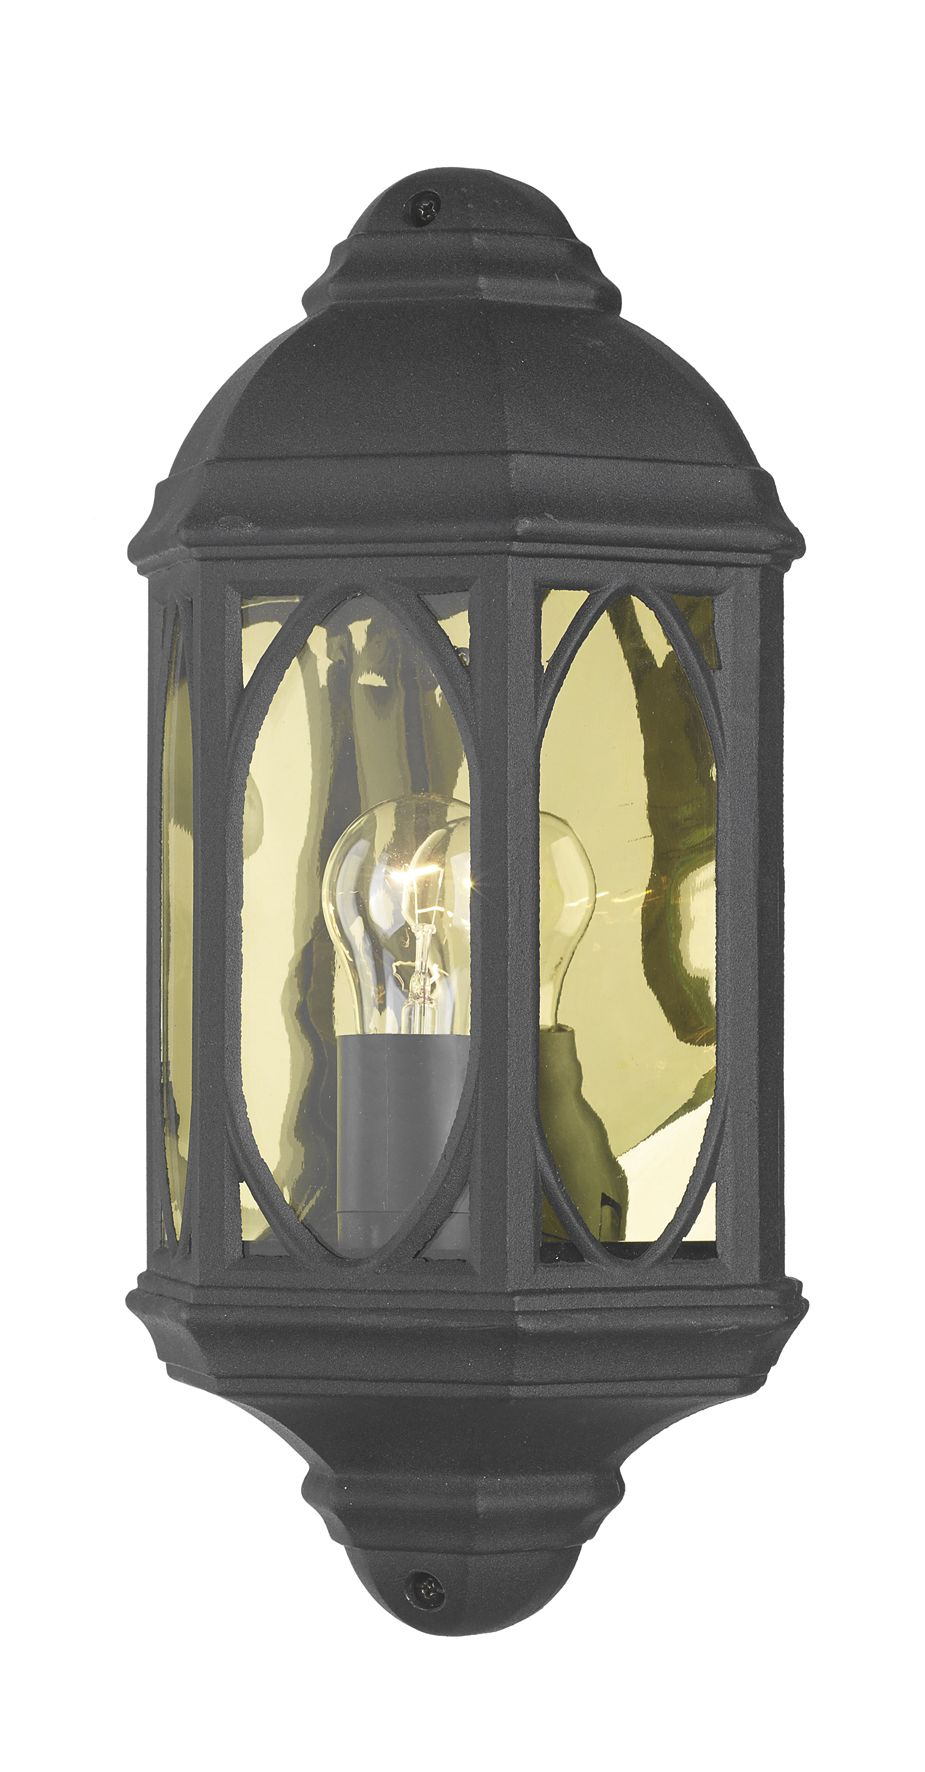 Double Insulated Class 2 Wall Lights : Tenby Wall Light Black Class 2 Double Insulated BXTEN2122-17